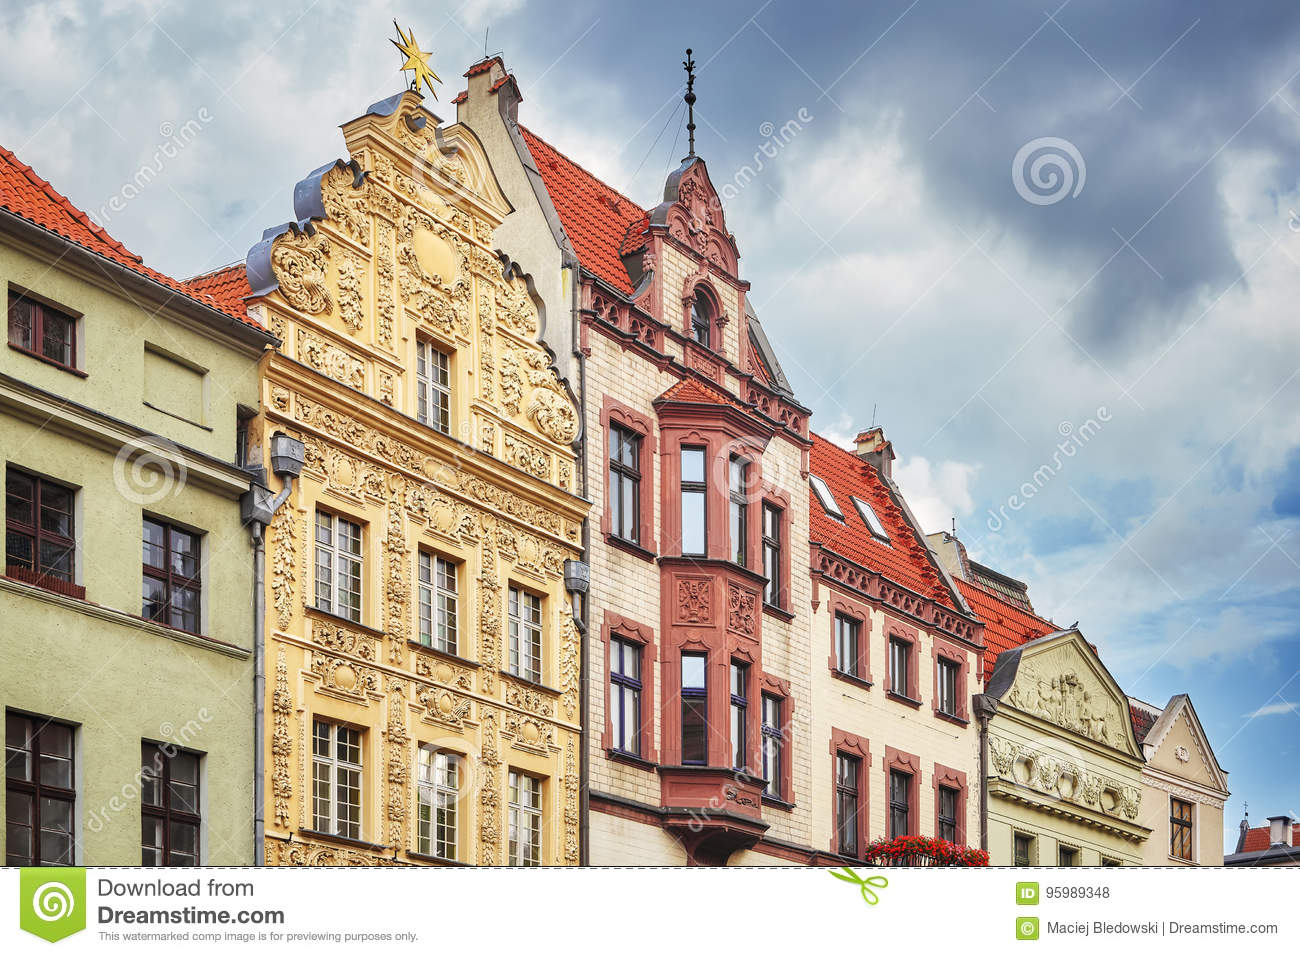 Facades of old houses in Torun old town, Poland